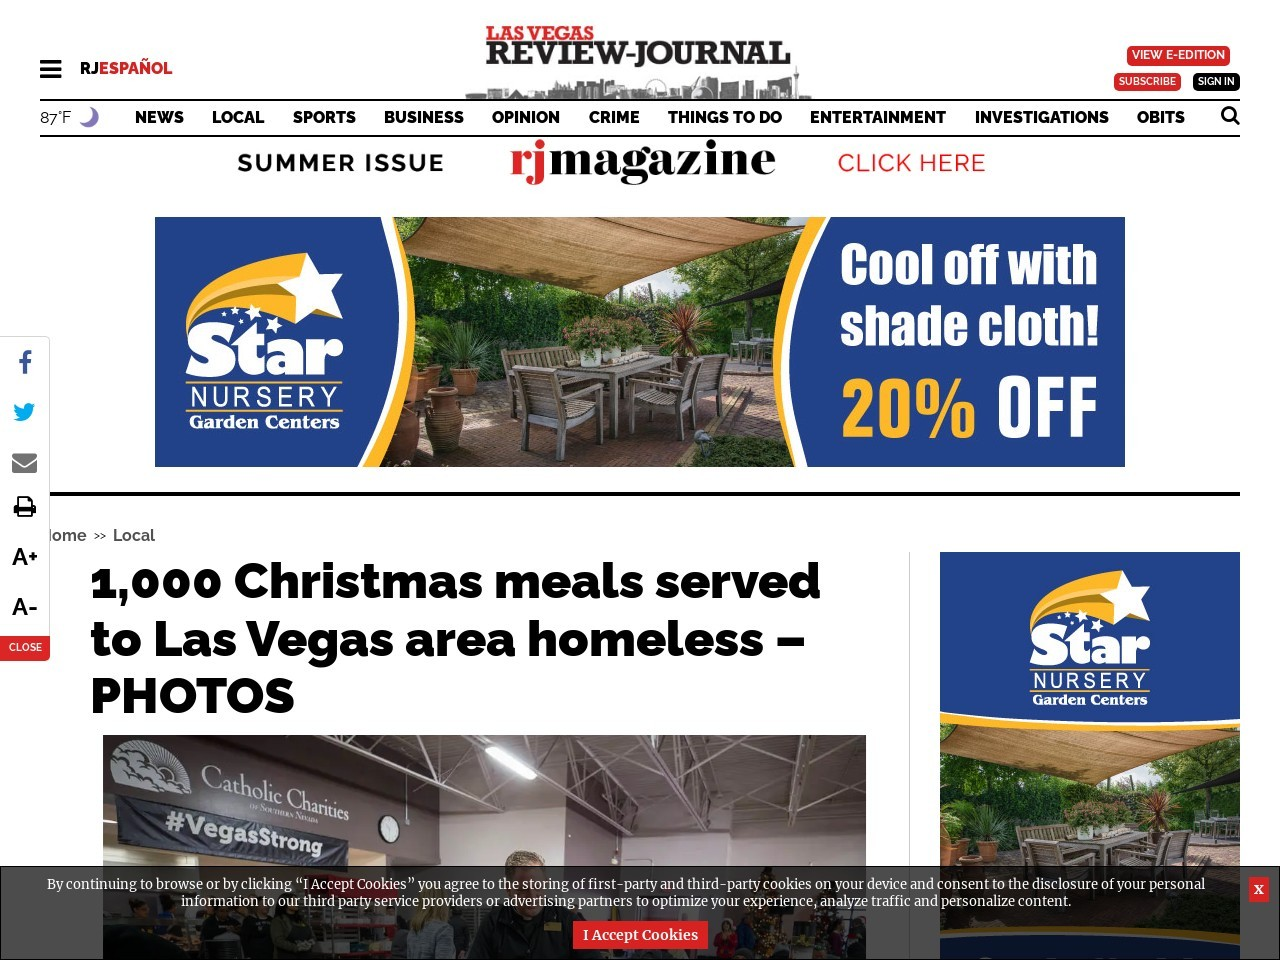 1,000 Christmas meals served to Las Vegas area homeless – PHOTOS